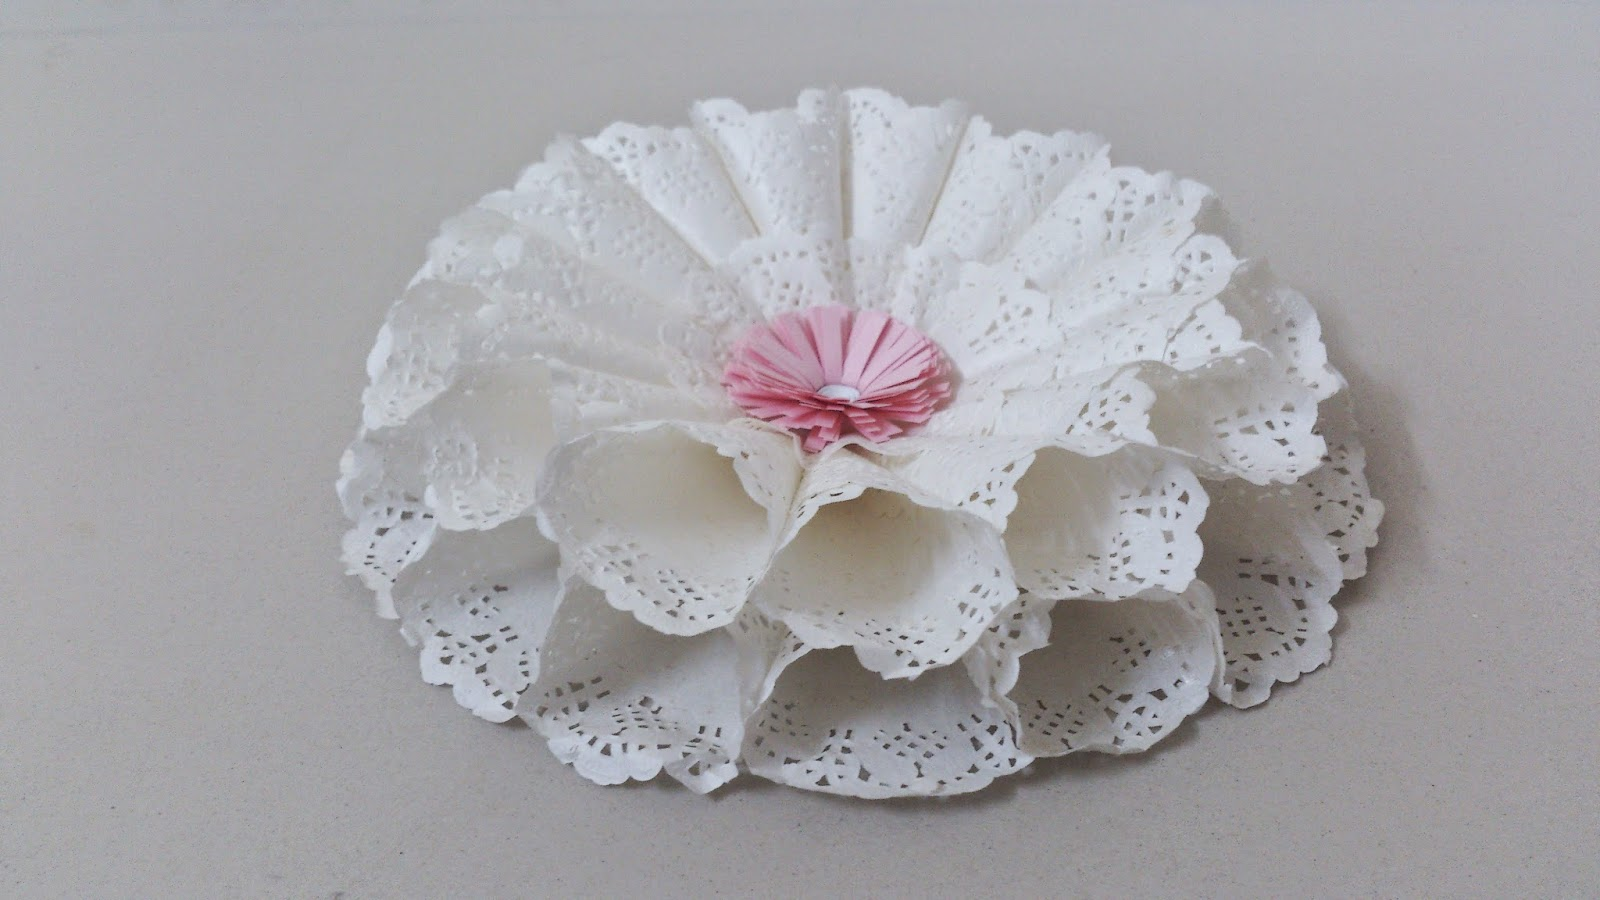 Handmade paper flower side view